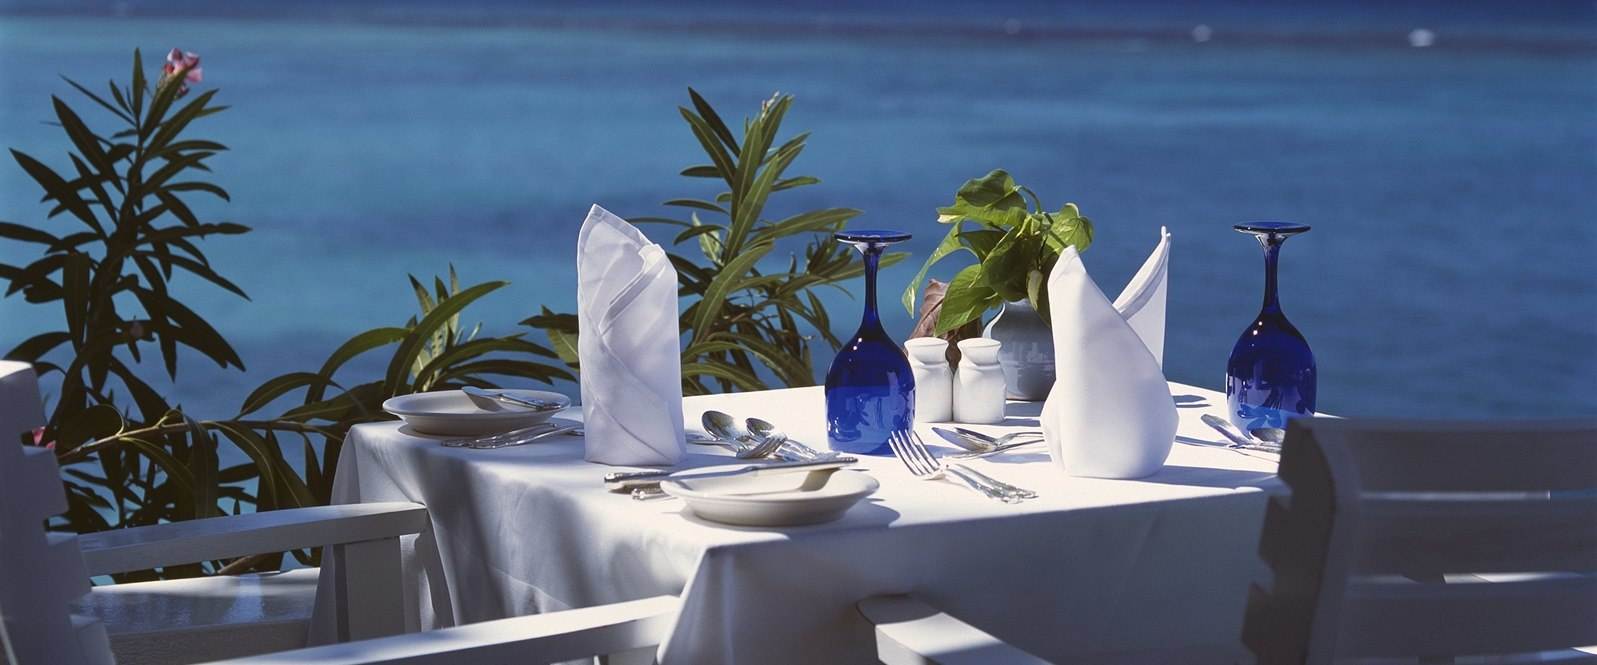 Enjoy breakfast overlooking the blue seas at Jamaica Inn, Jamaica